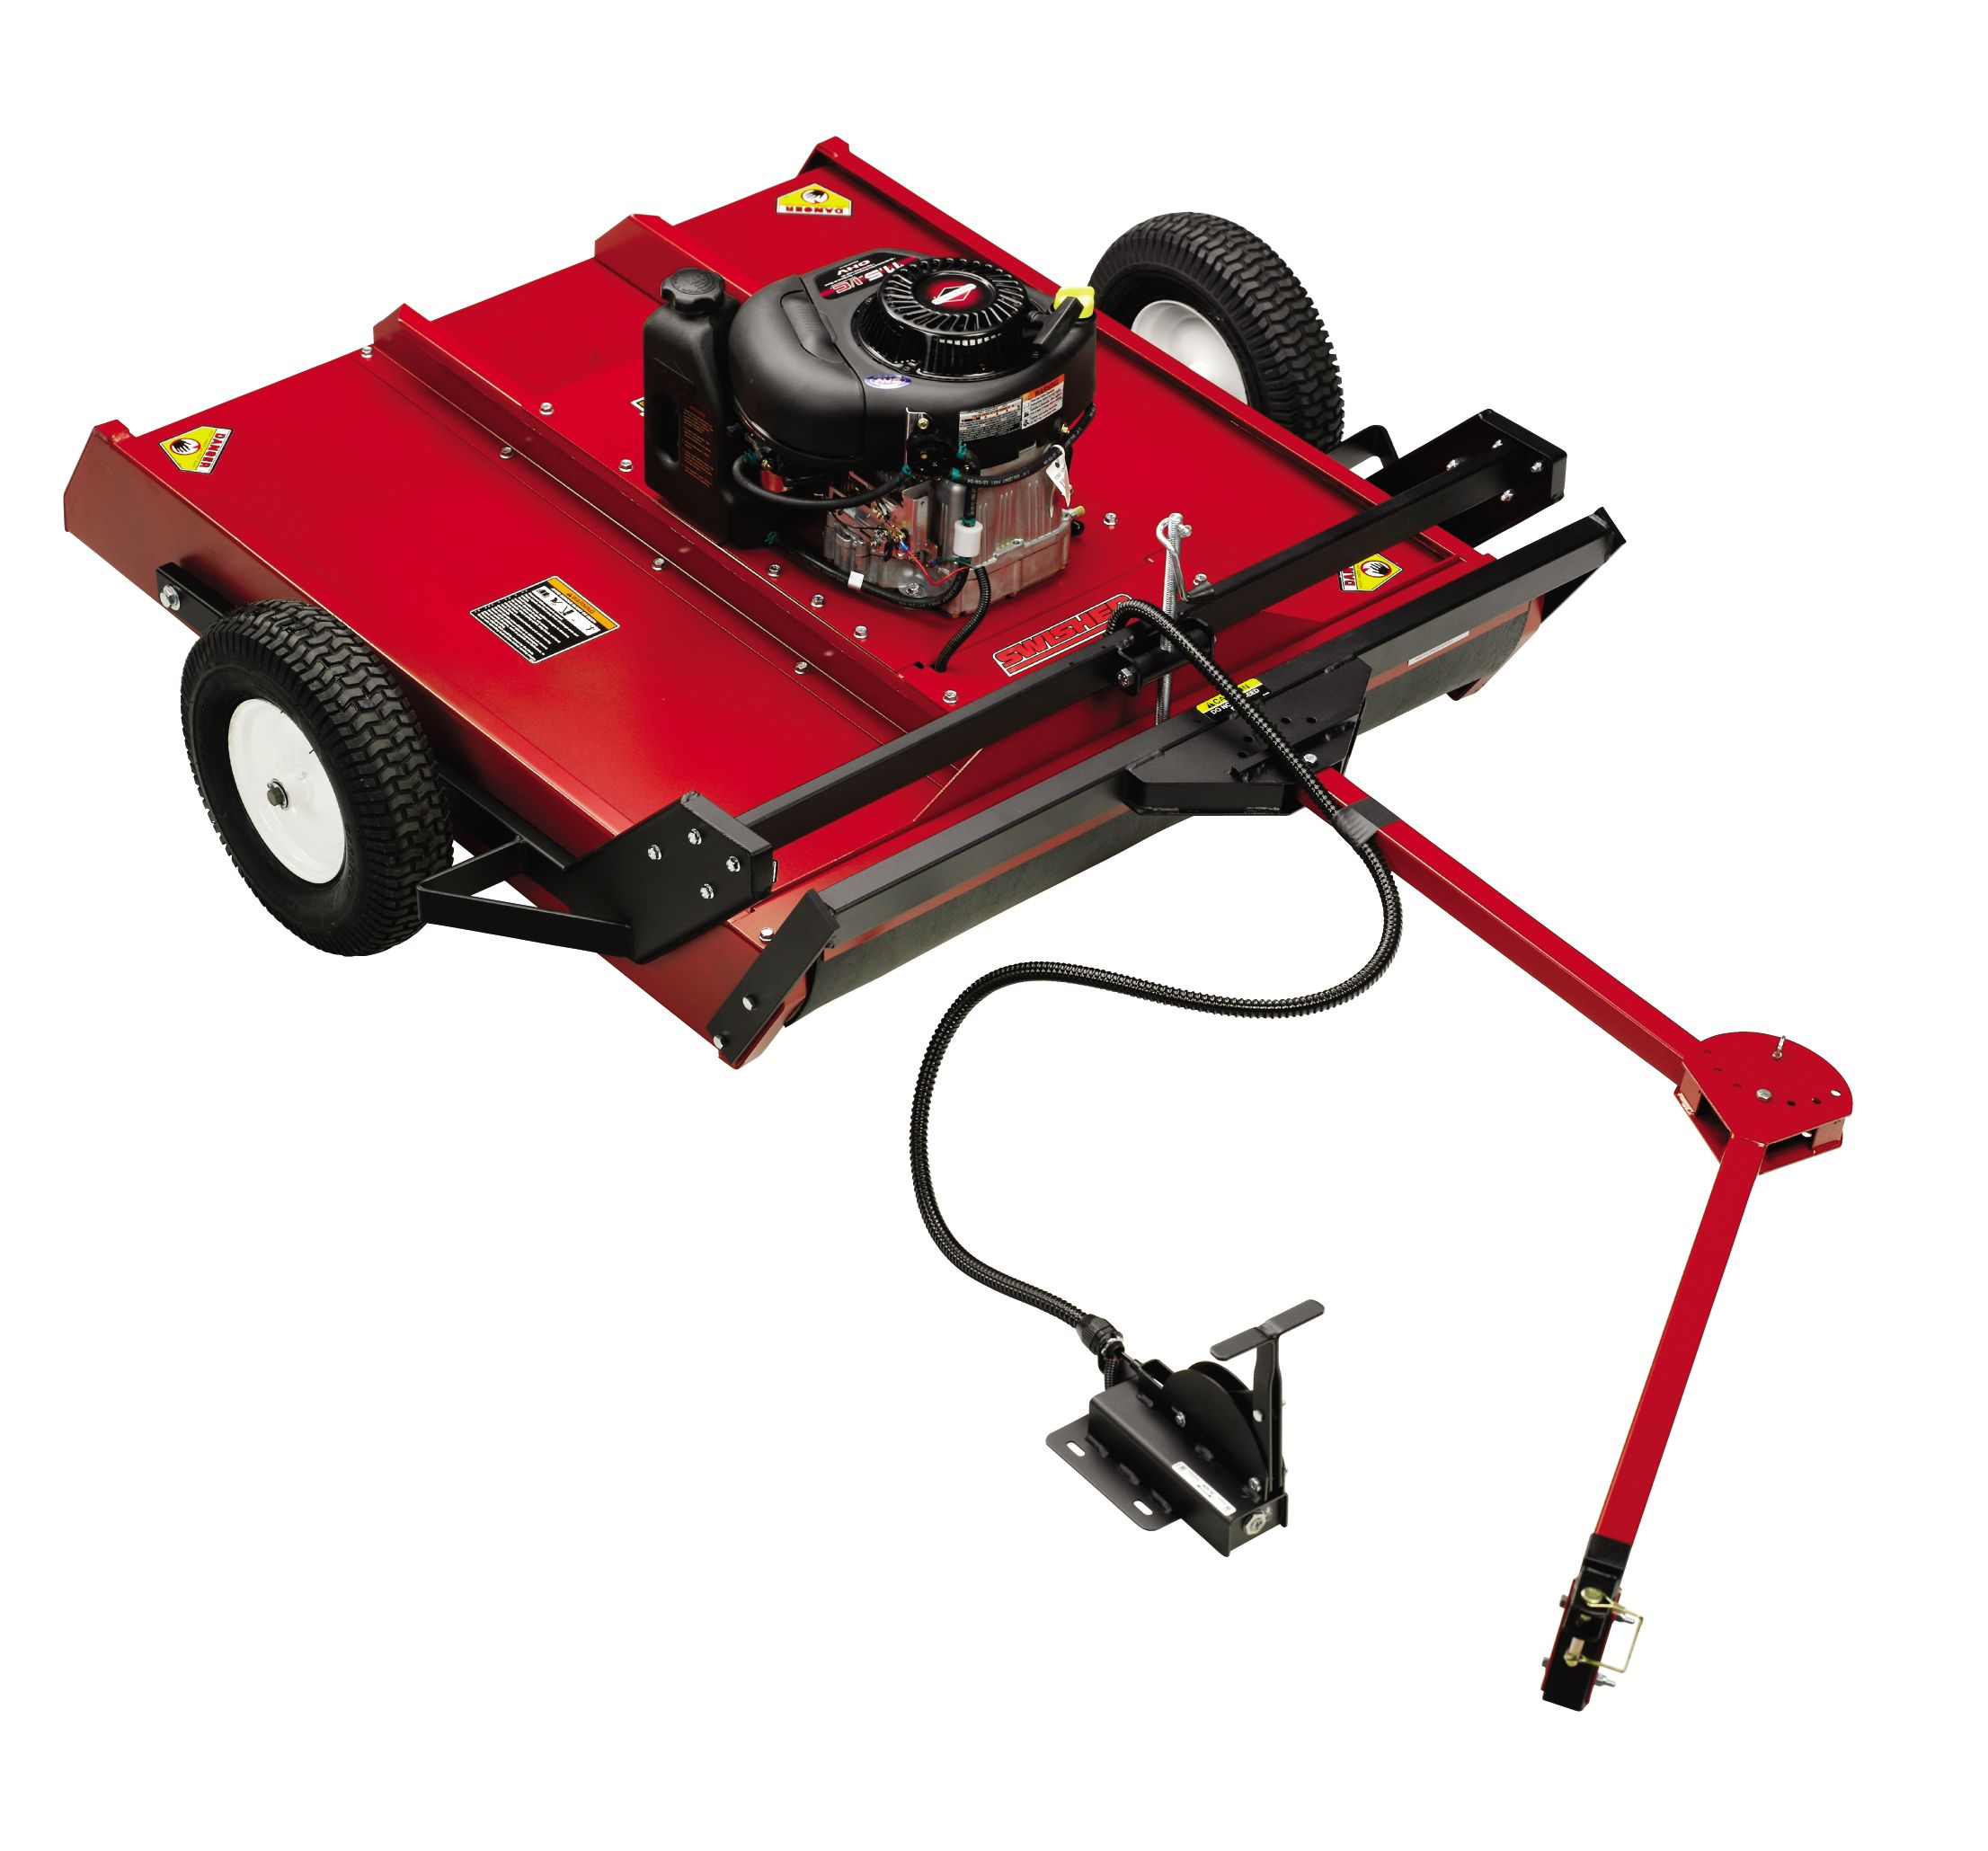 small resolution of swisher t1260 mower wiring diagram trusted wiring diagram country clipper wiring diagram bush hog pz2561 wiring